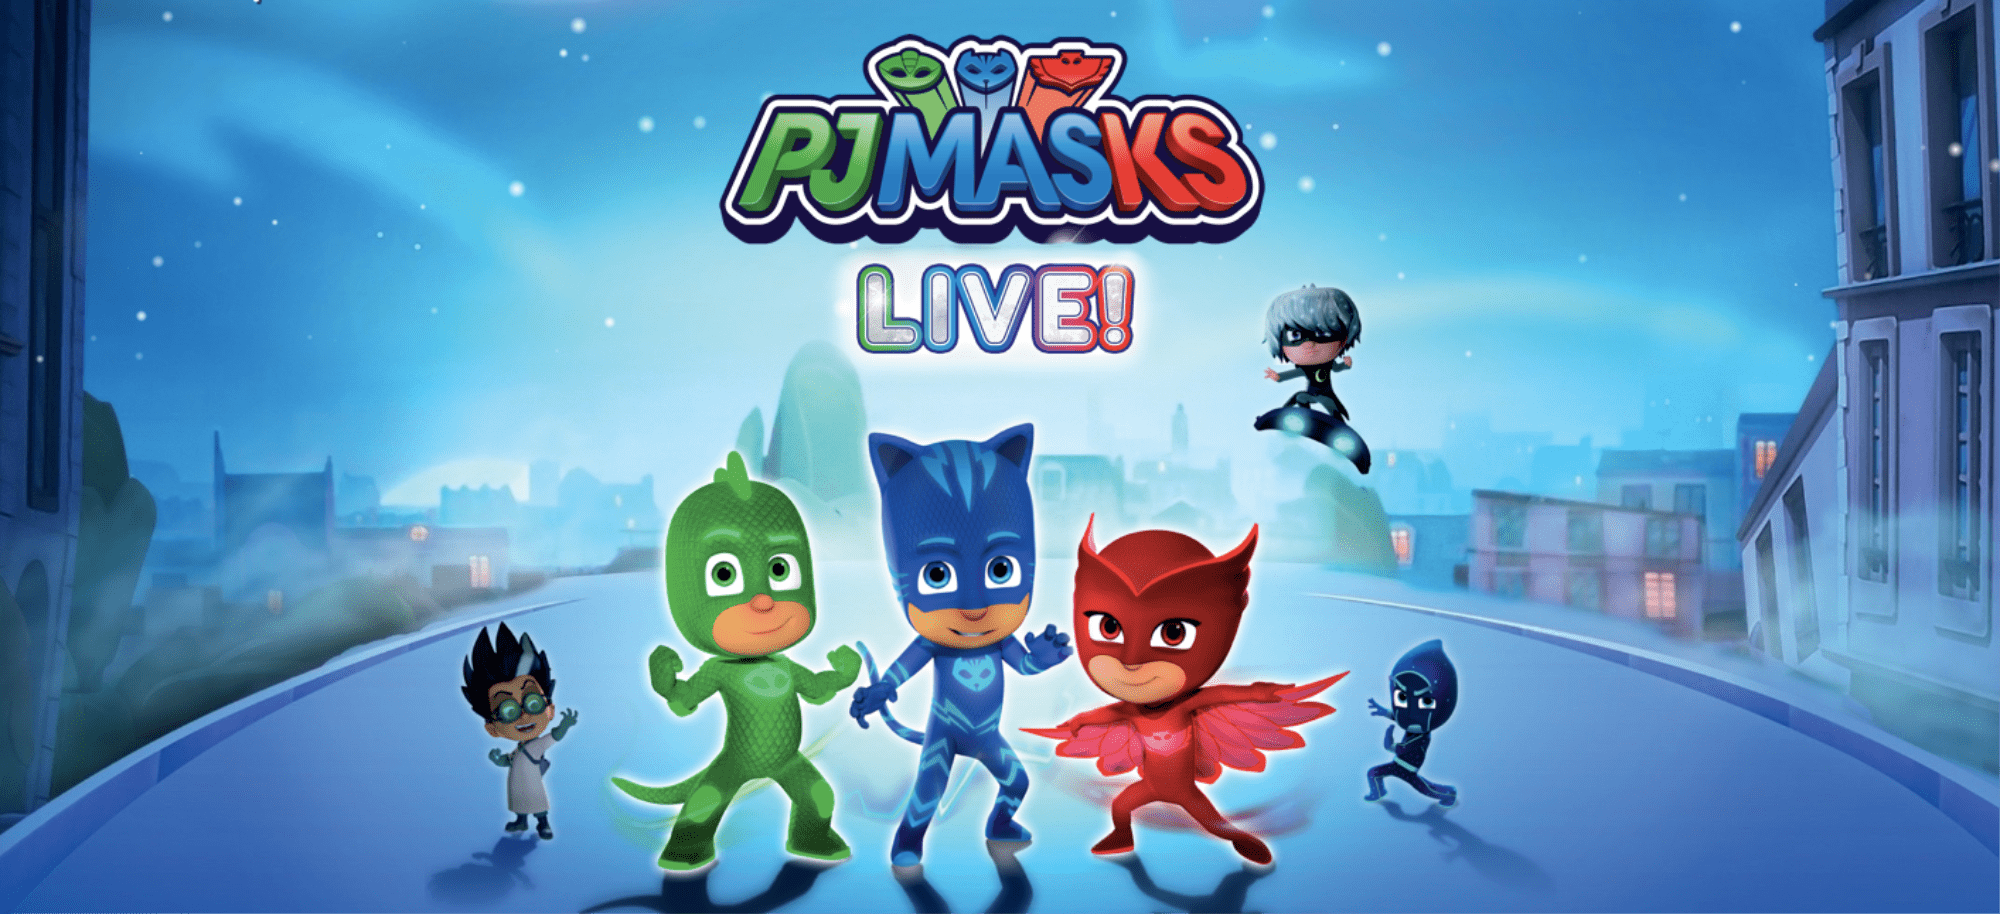 Calling All PJ Masks Fans! There's a Live Tour Coming, and You're Gonna Want Tickets!